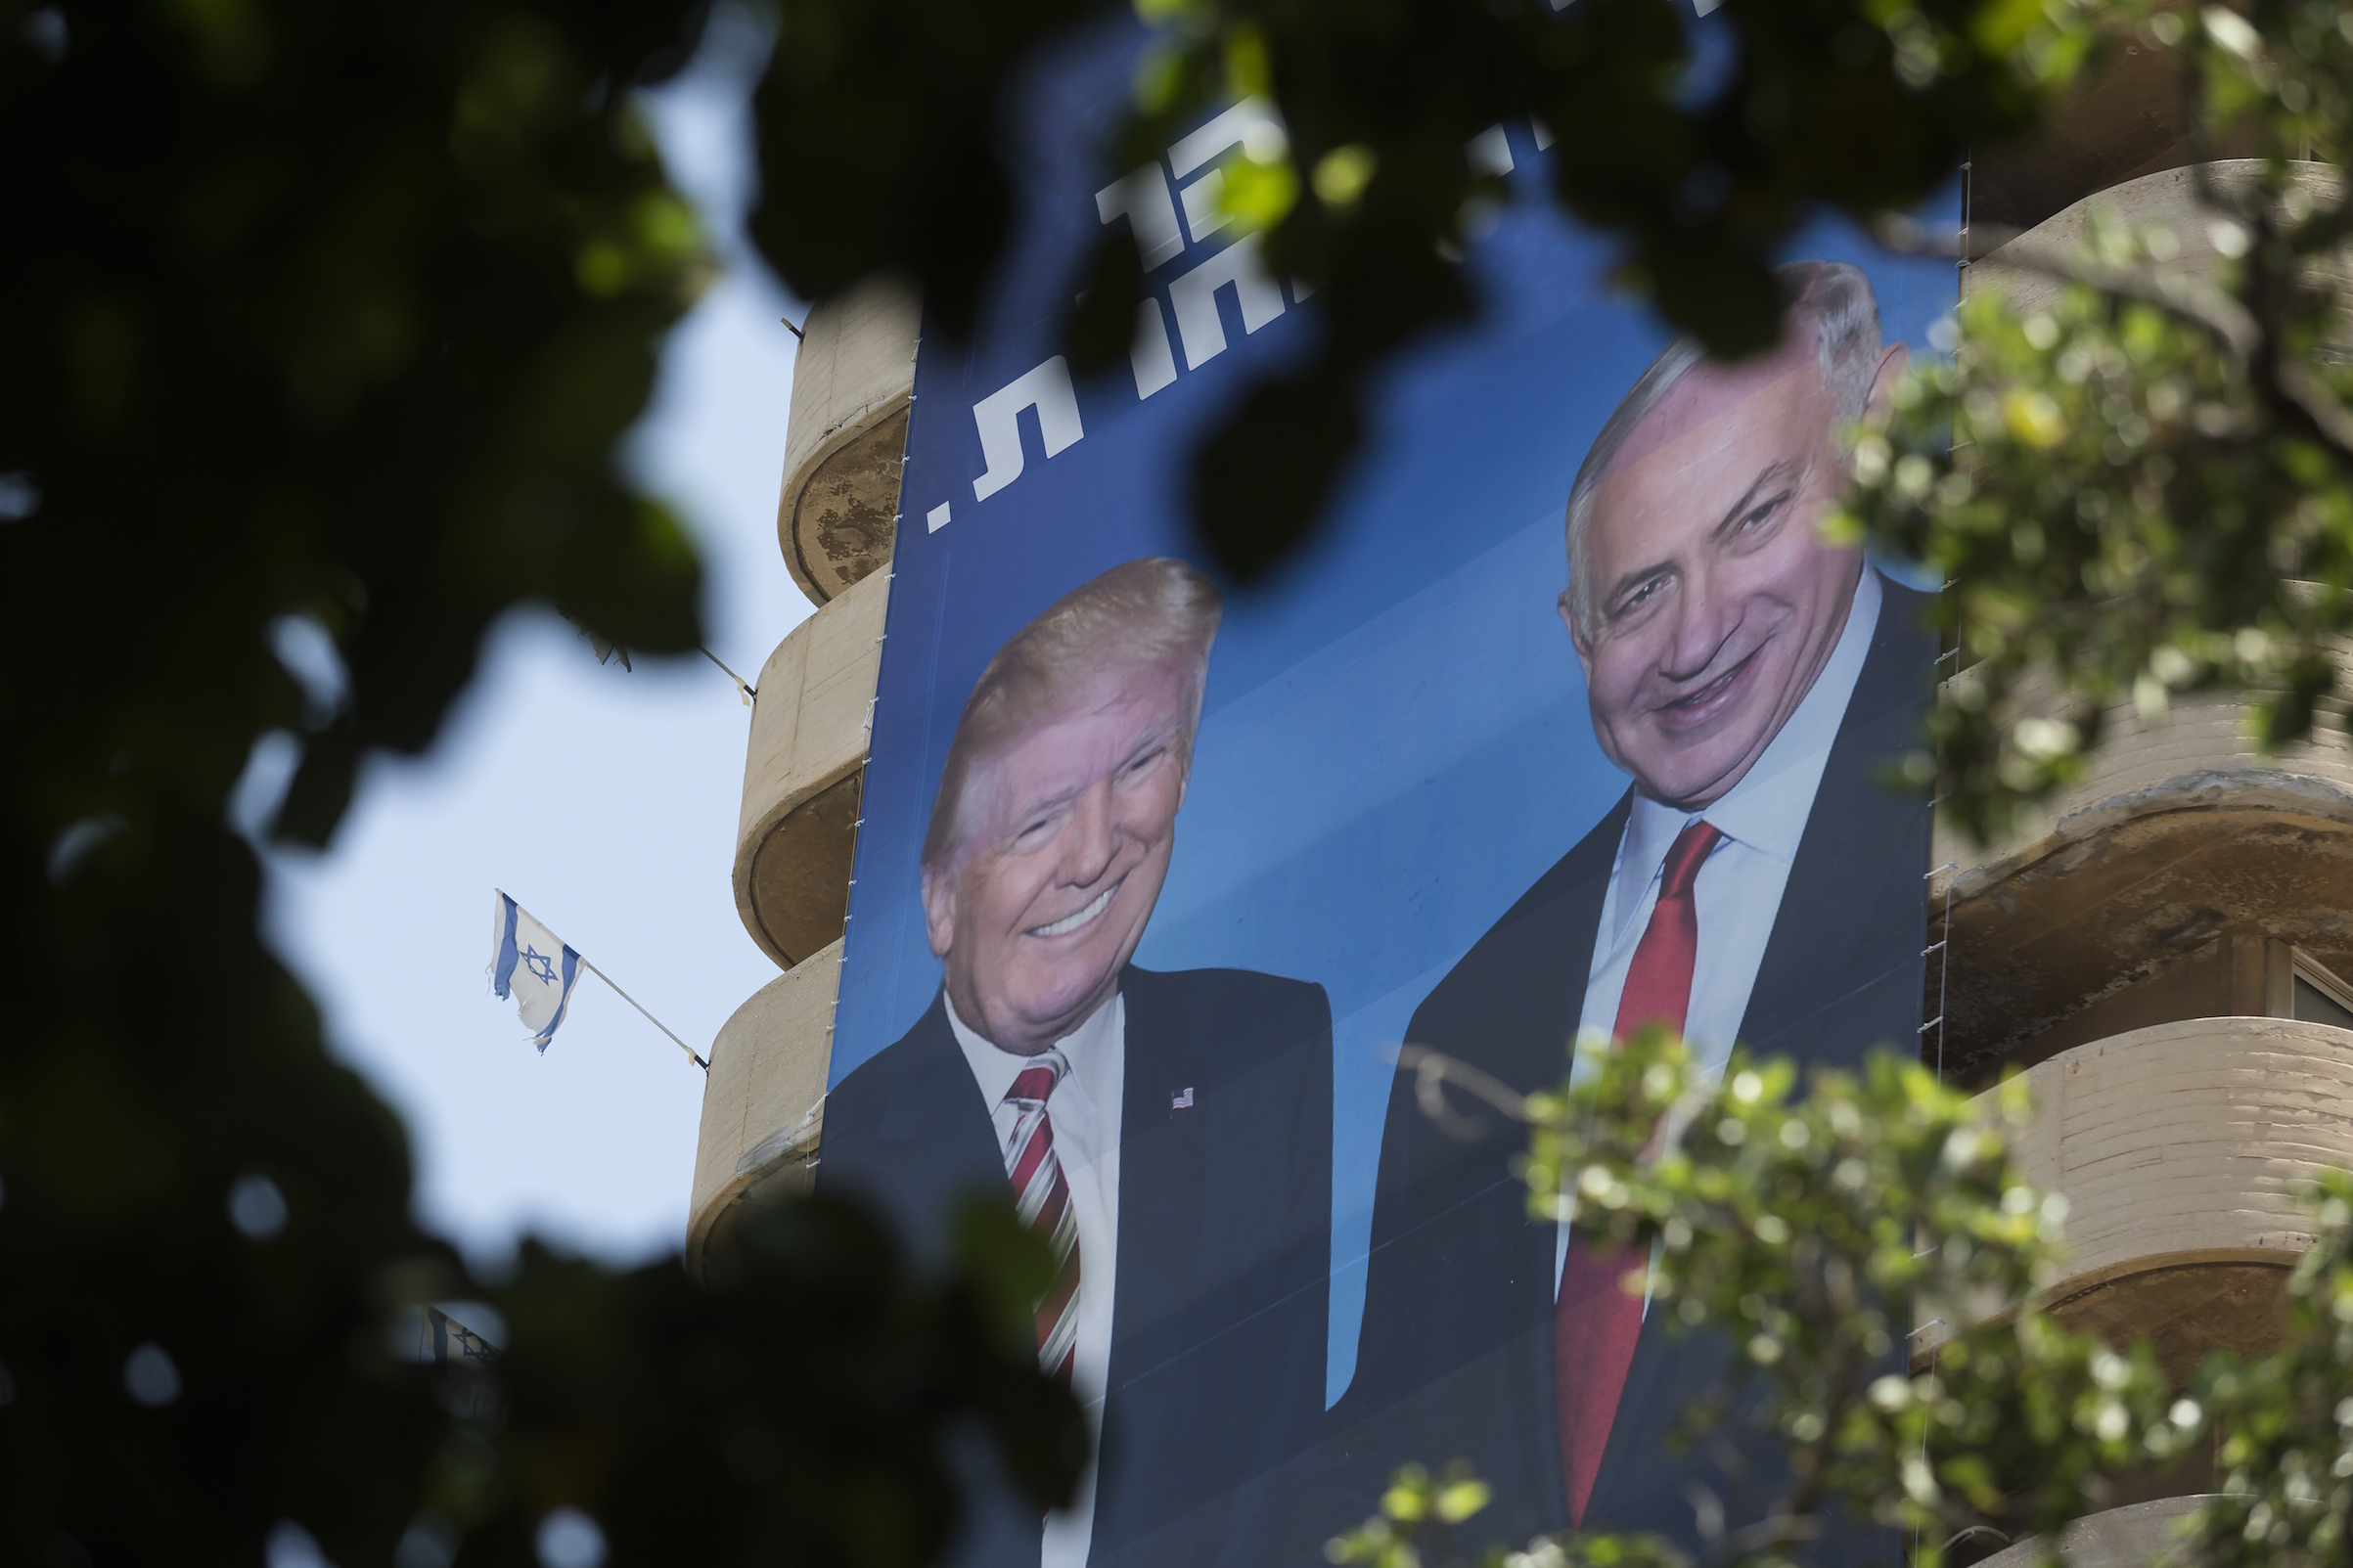 A Likud Party billboard shows Israeli Prime Minister Benjamin Netanyahu with U.S. President Donald Trump on Aug. 5, 2019 in Tel Aviv, shortly before elections there.